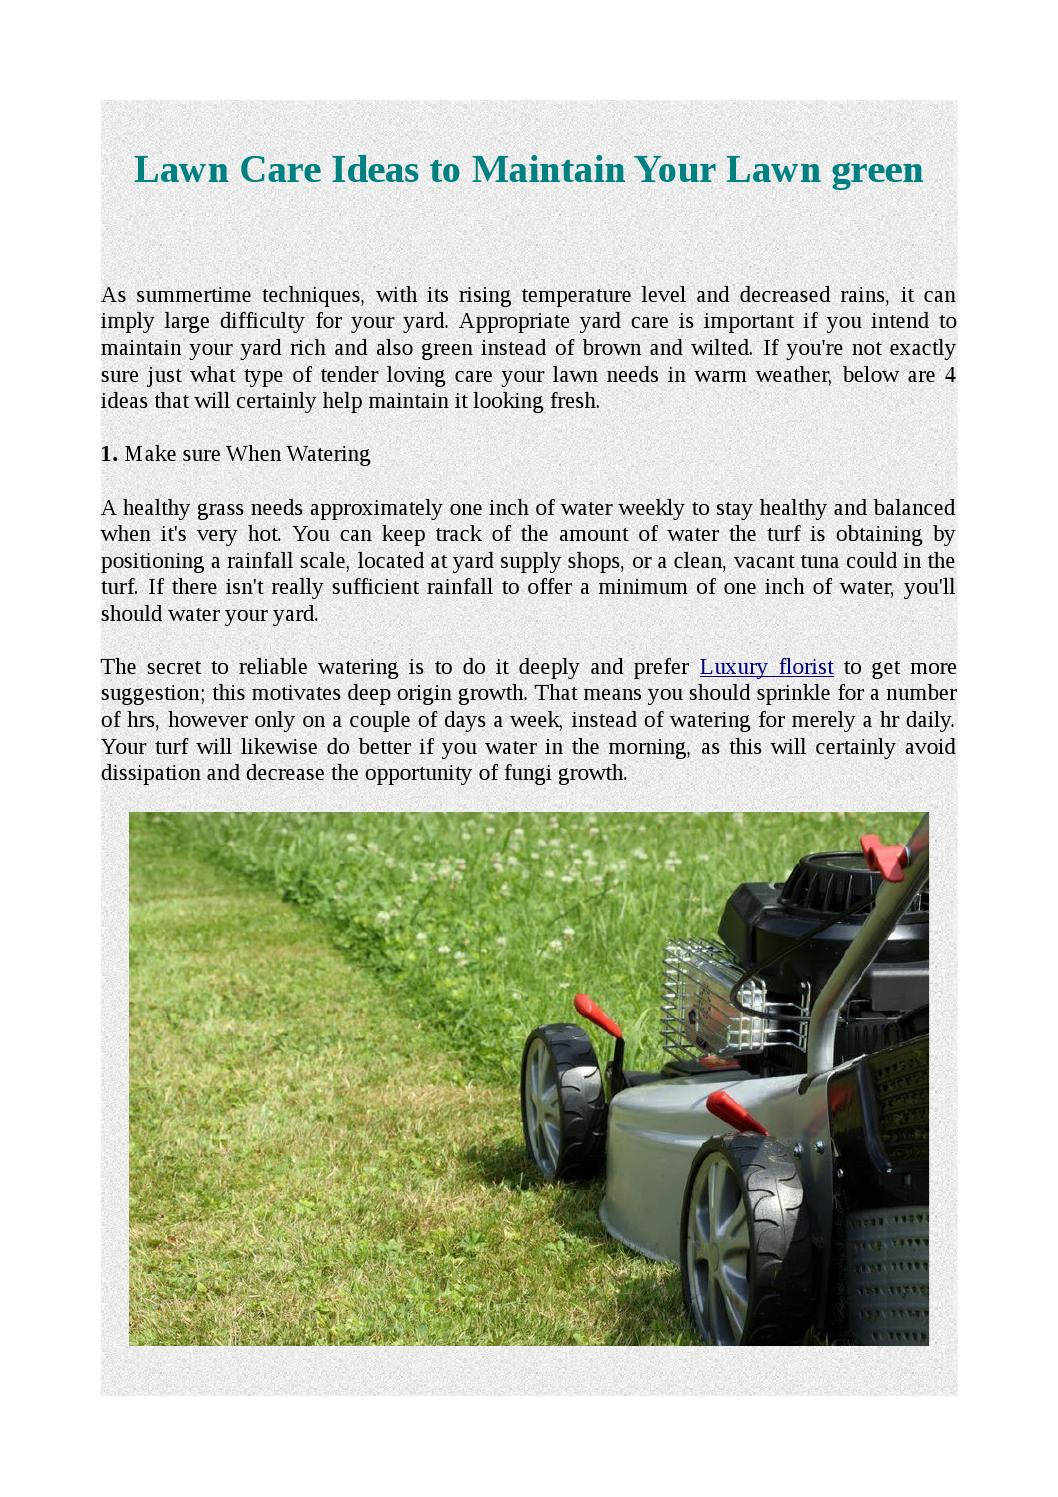 Lawn care ideas to maintain your lawn green by jamescarmouche issuu publicscrutiny Image collections